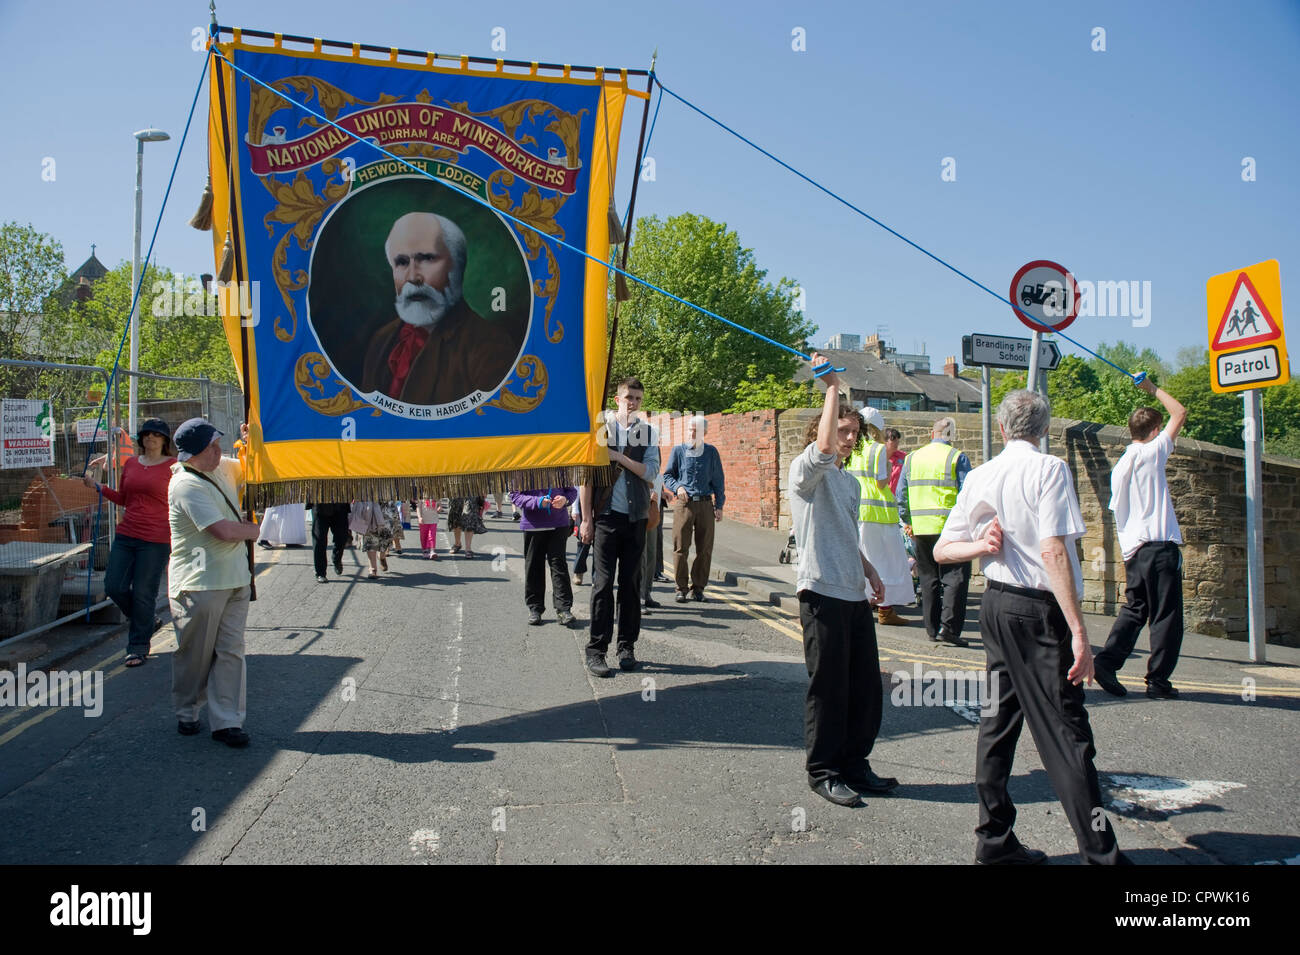 Banner of Kier Hardie during commemoration of Felling mining disaster, Carlisle Street, Felling. - Stock Image